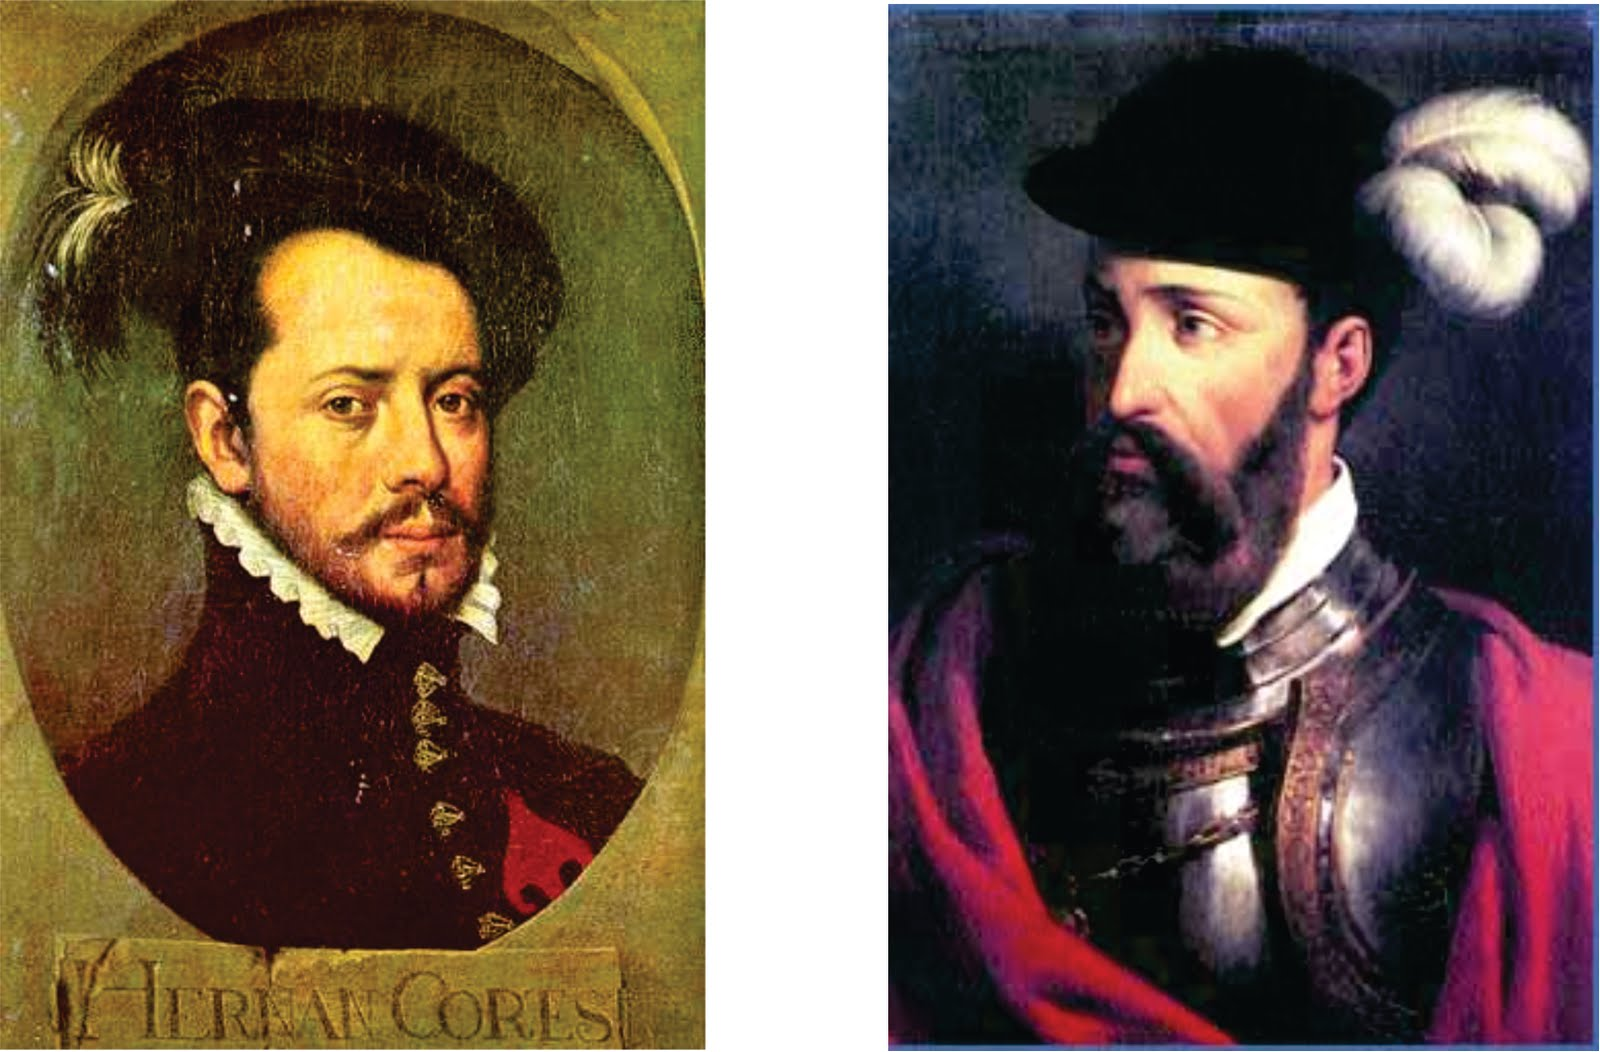 a biography of hernando cortez a conquiztador Borm in 1485, hernan cortes, marquiz del valle de oaxaco, was a spanish conquistador who overthrew the aztec empire (1519-1521) and won mexico for the crown of spain.